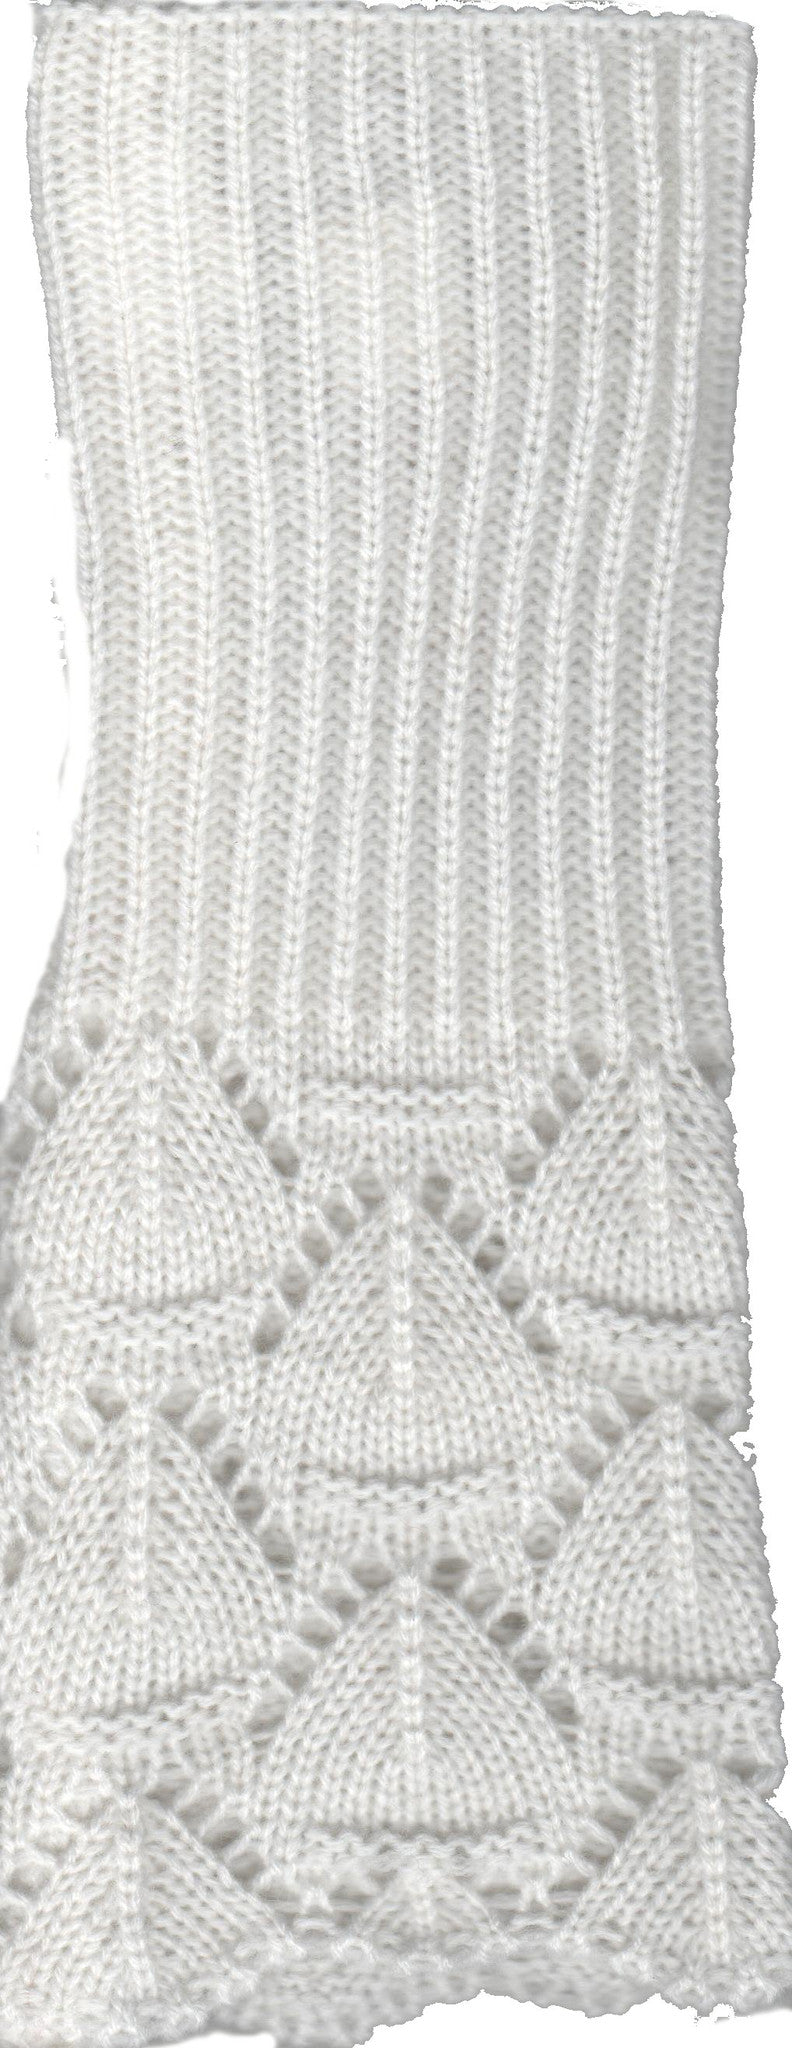 Scallop Edge Design with Lace weave by Lauer Gloves in Ivory